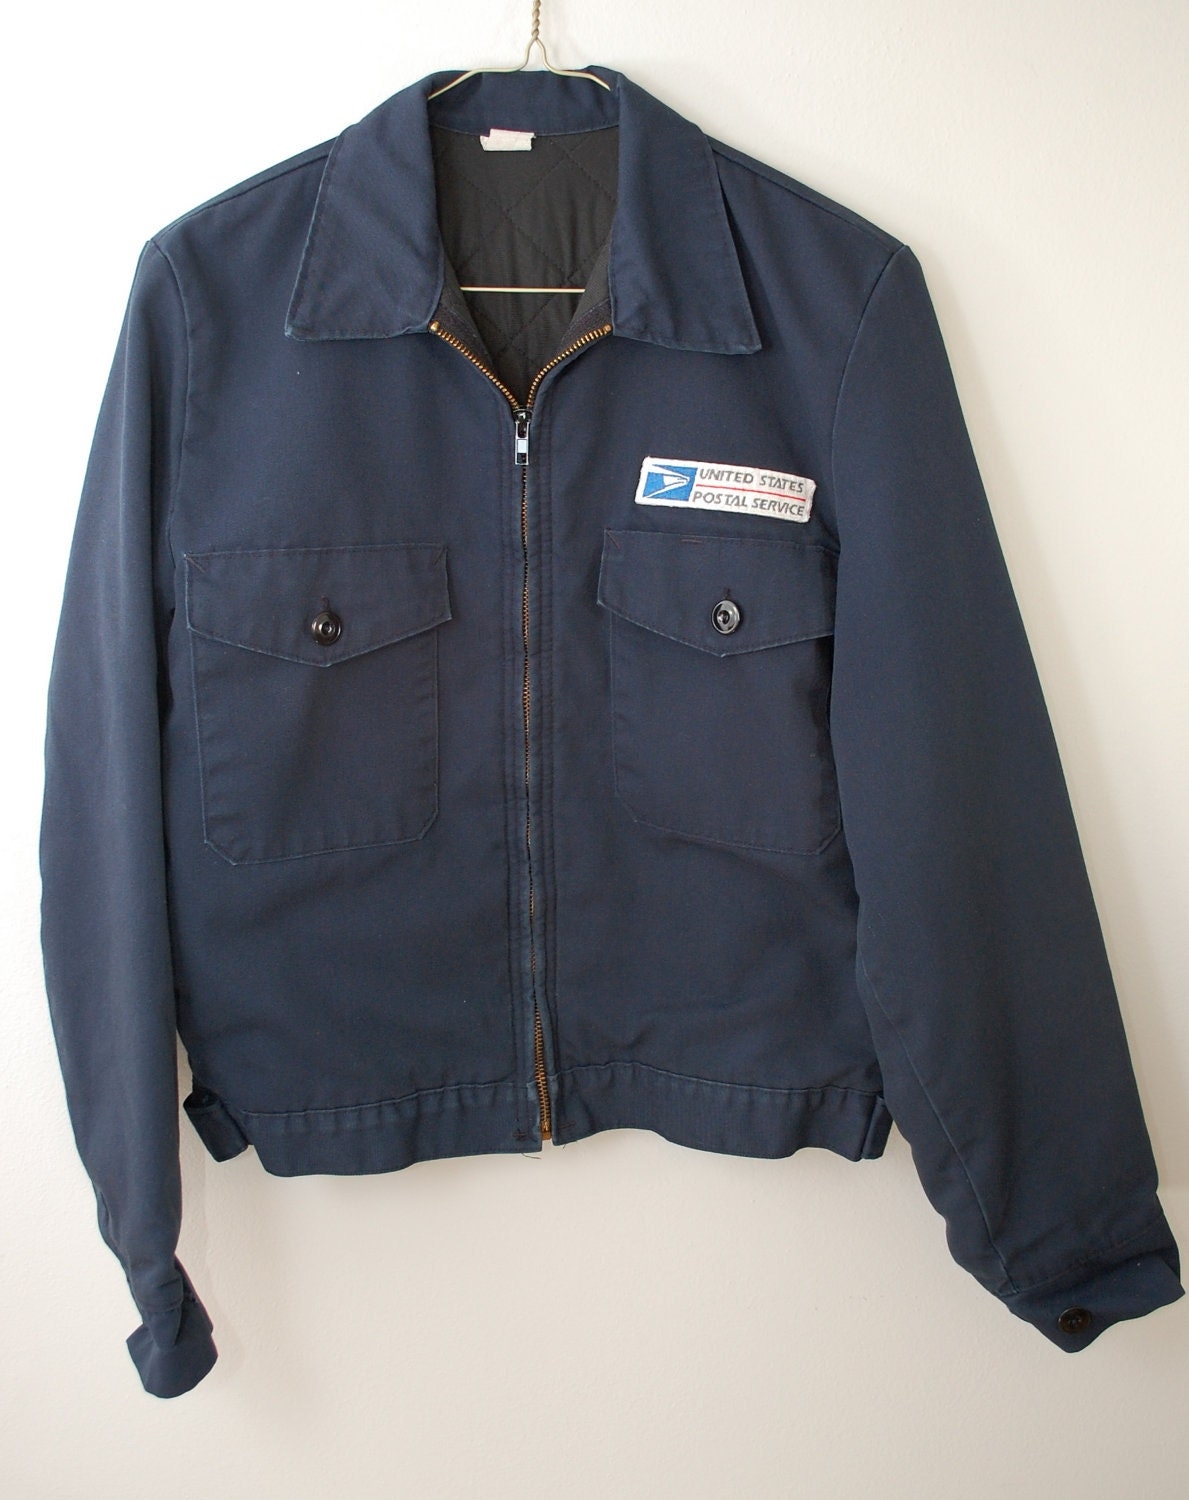 b0b93a60ca Vintage US Postal Service lined jacket coat mens small Made In - photo#25